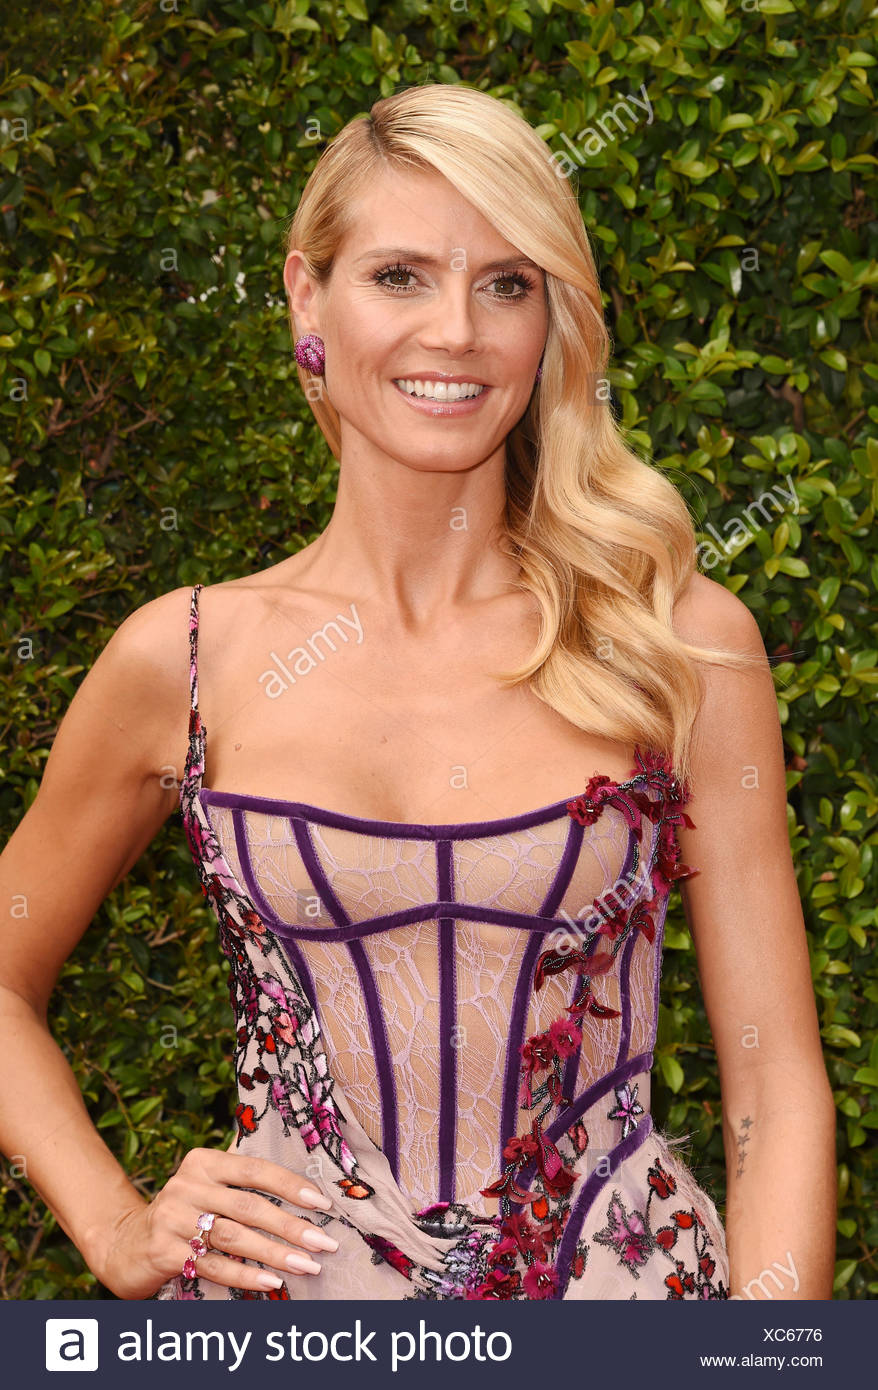 TV personality/model Heidi Klum attends the 2015 Creative Arts Emmy Awards at Microsoft Theater on September 12, 2015 in Los Angeles, California., Additional-Rights-Clearances-NA - Stock Image